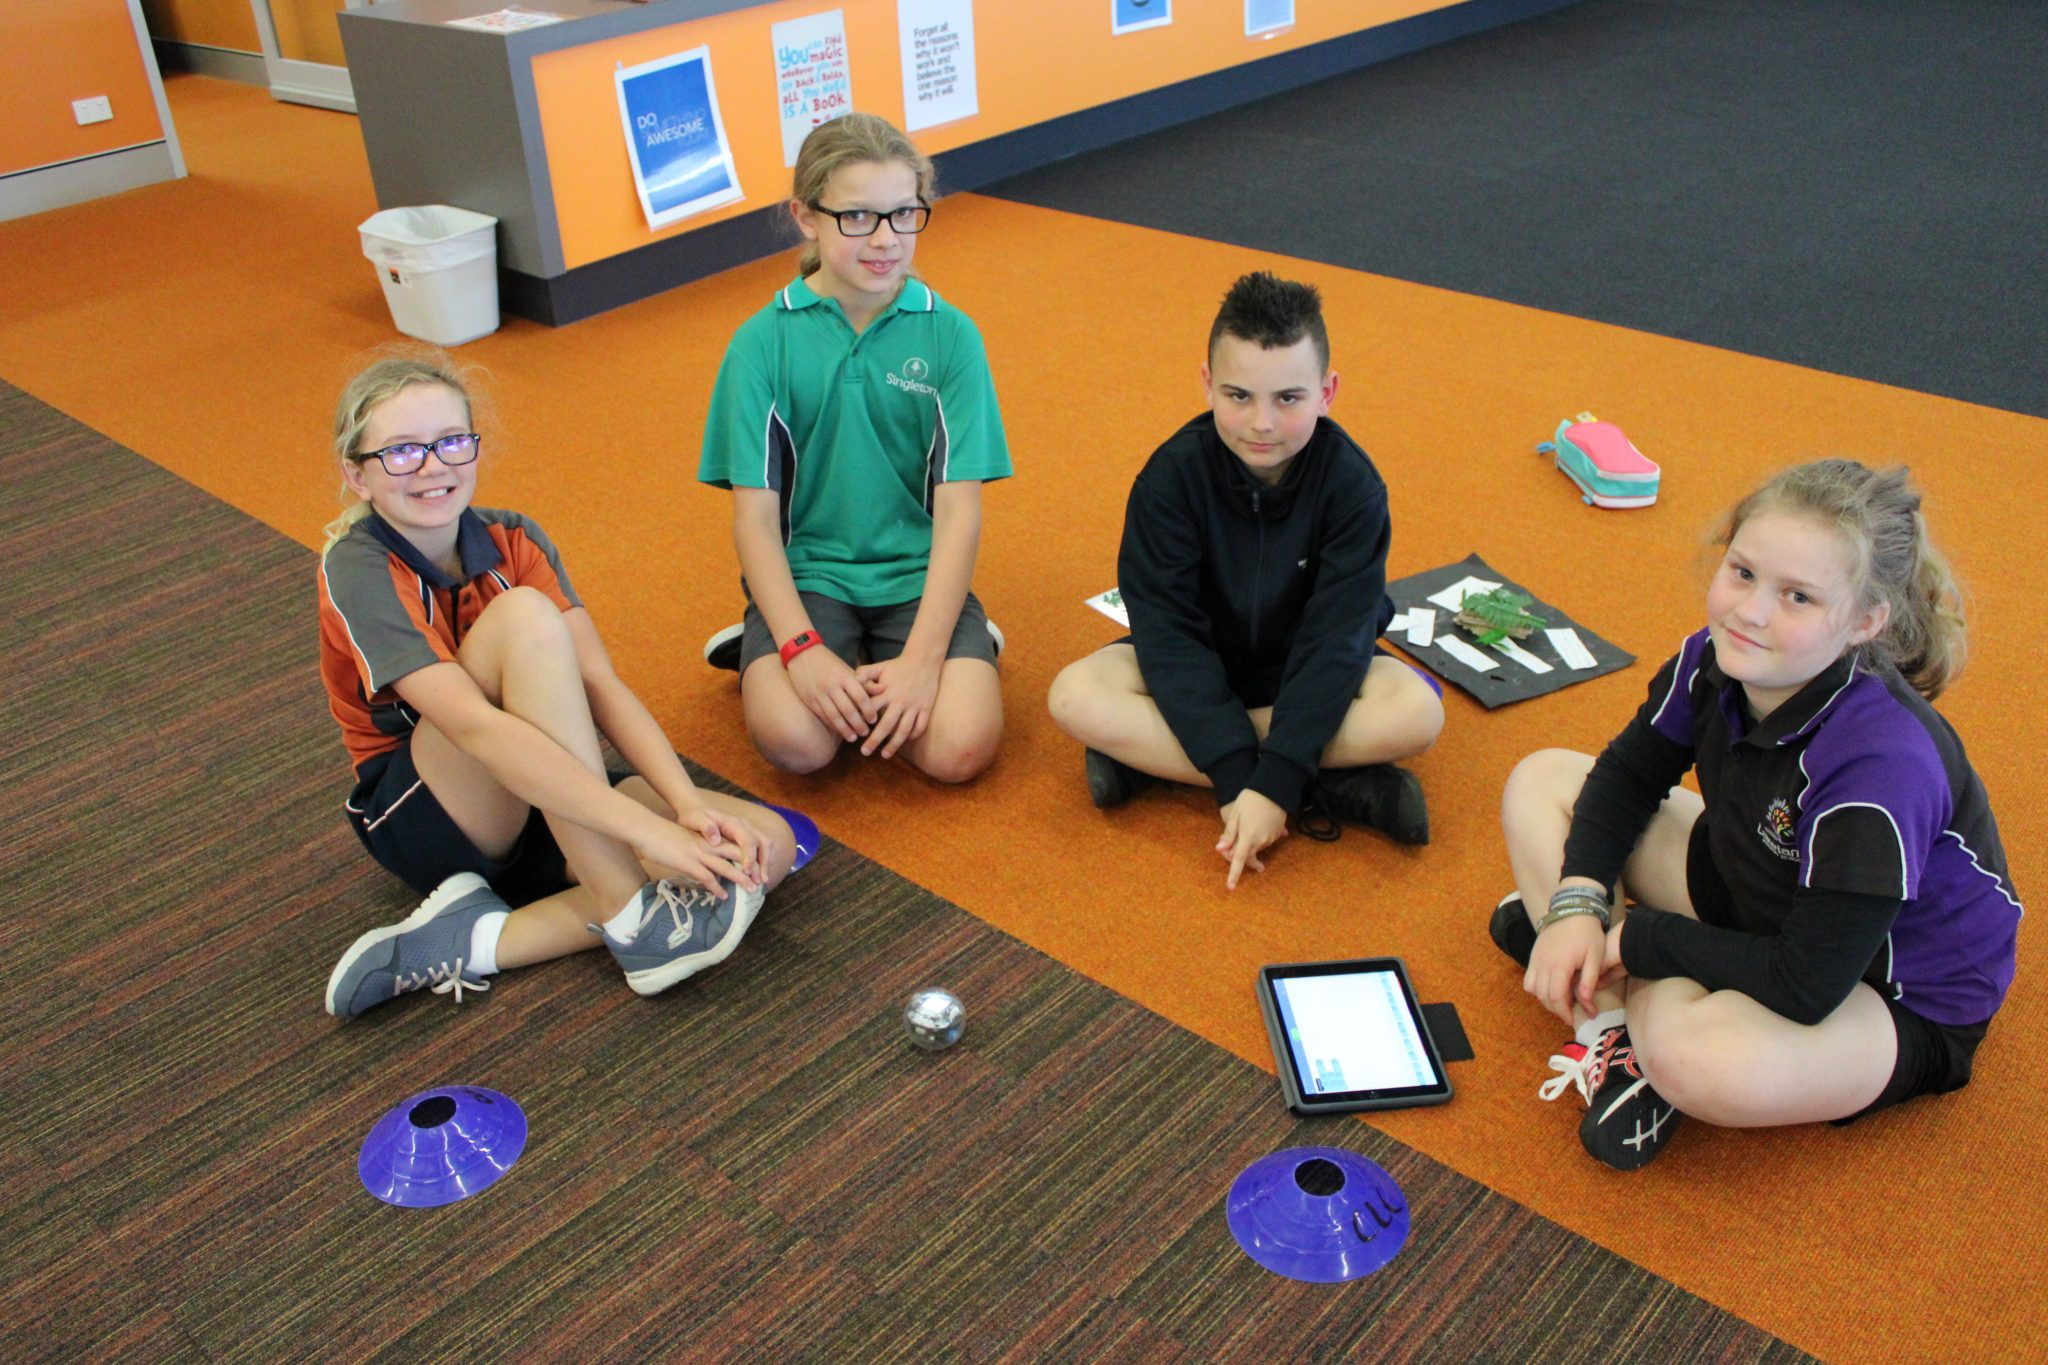 4 local primary school students playing with Spheros